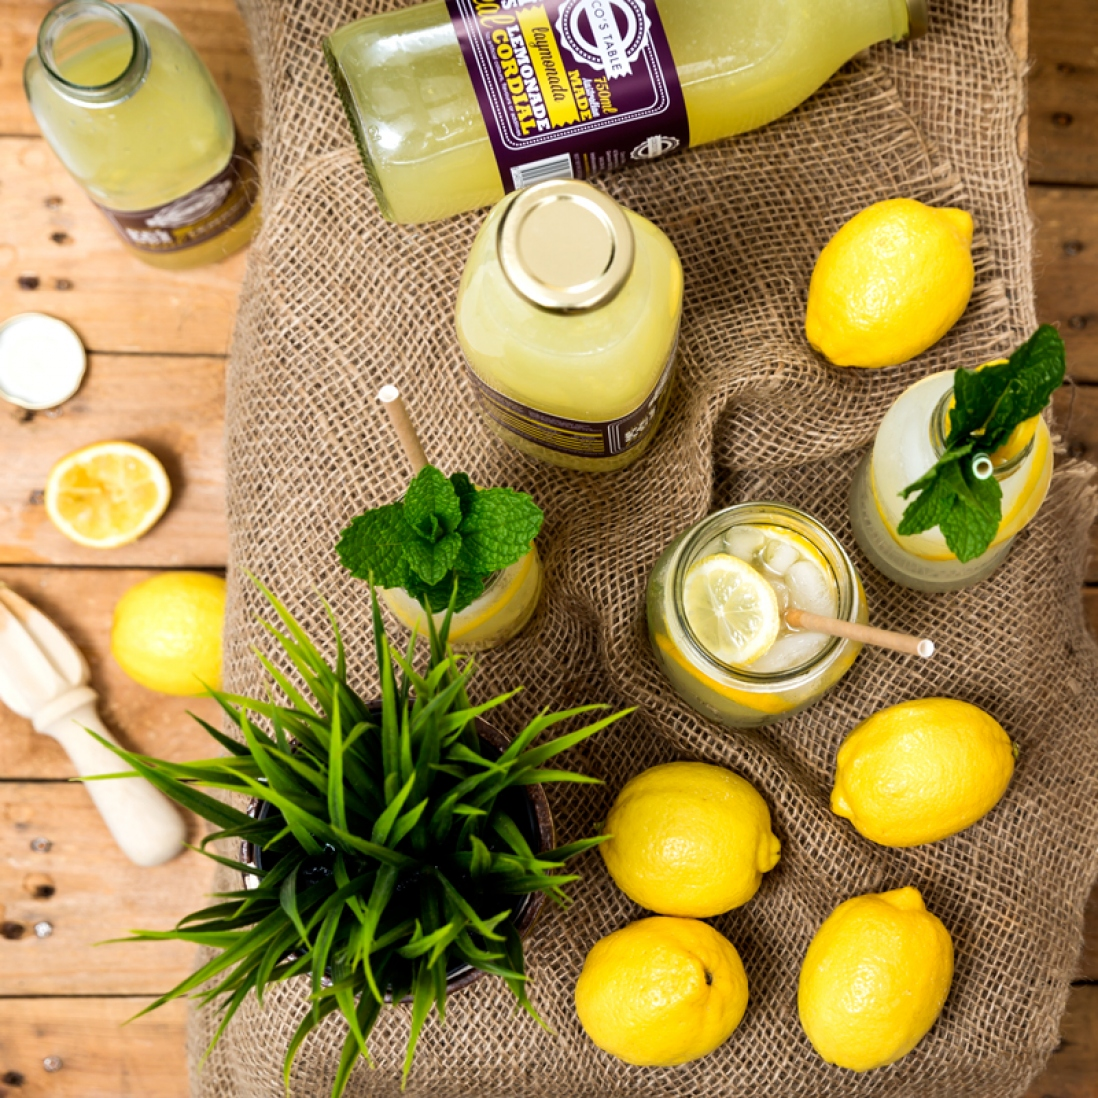 Image of lemons and herbs and bottled produce